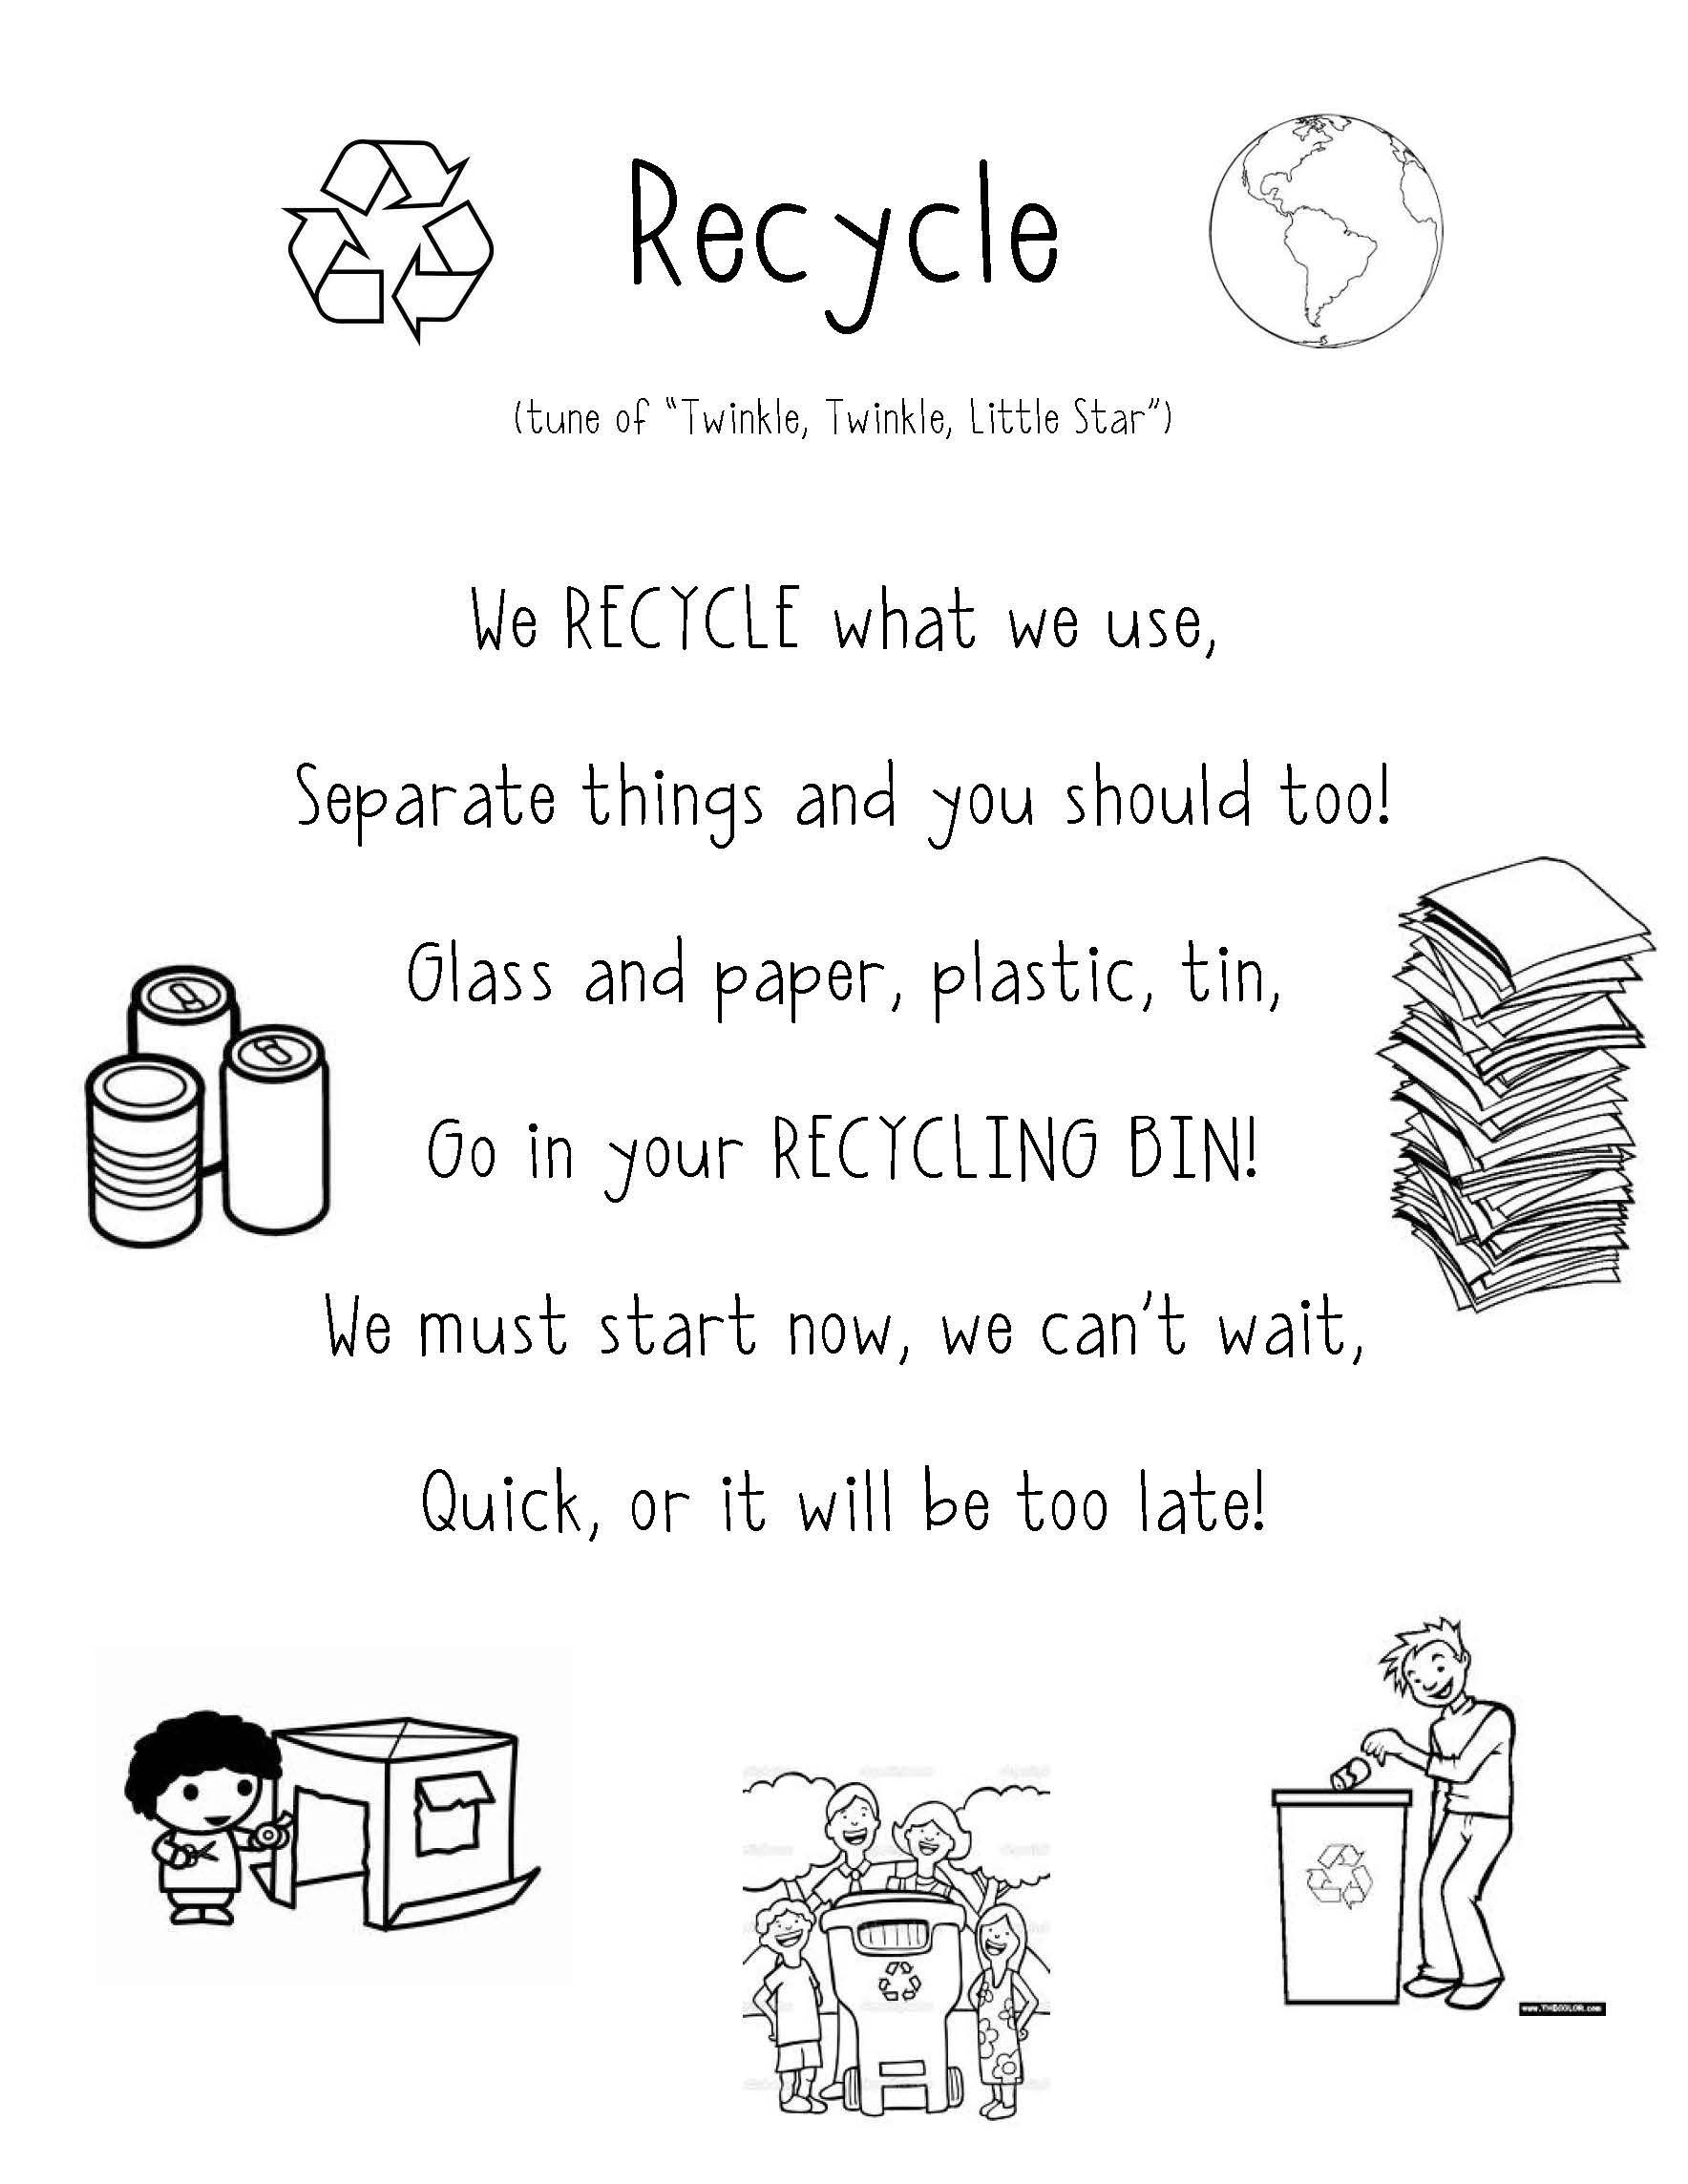 Recycle Worksheets for Preschoolers Recycle Poem Super Cute for Preschool and Teaching Students